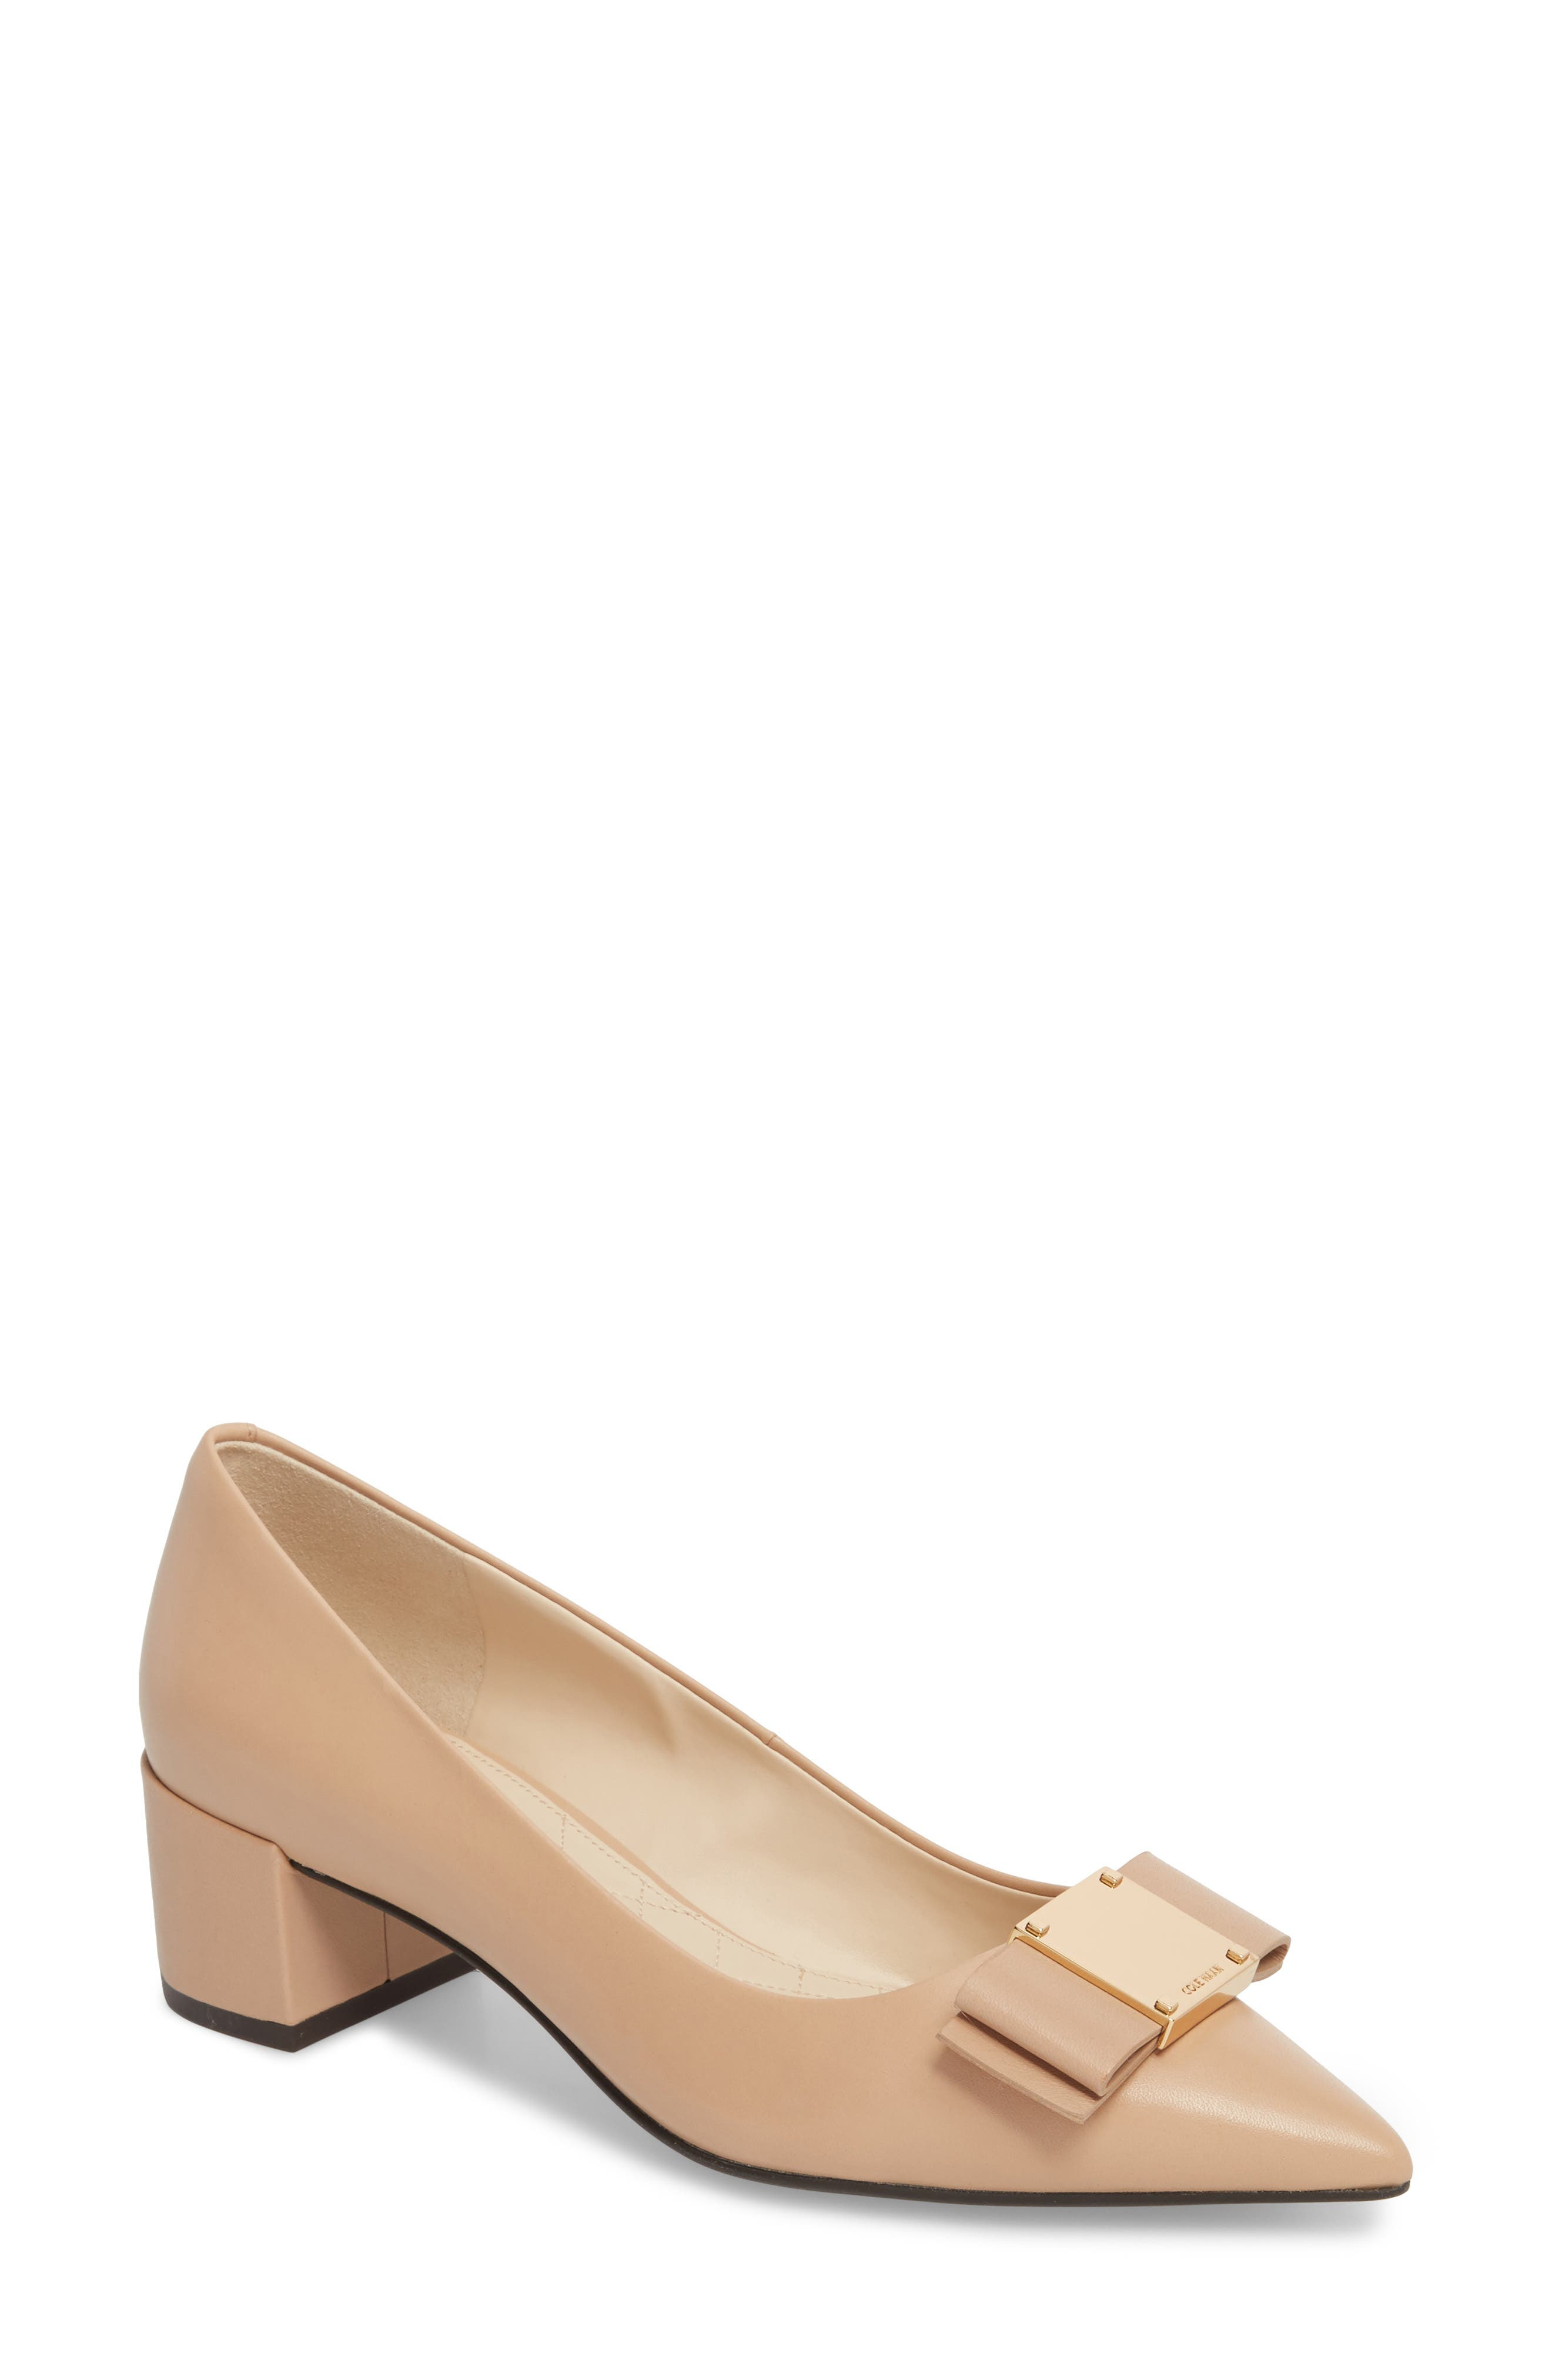 Tali Modern Waterproof Bow Pump,                             Main thumbnail 1, color,                             NUDE LEATHER